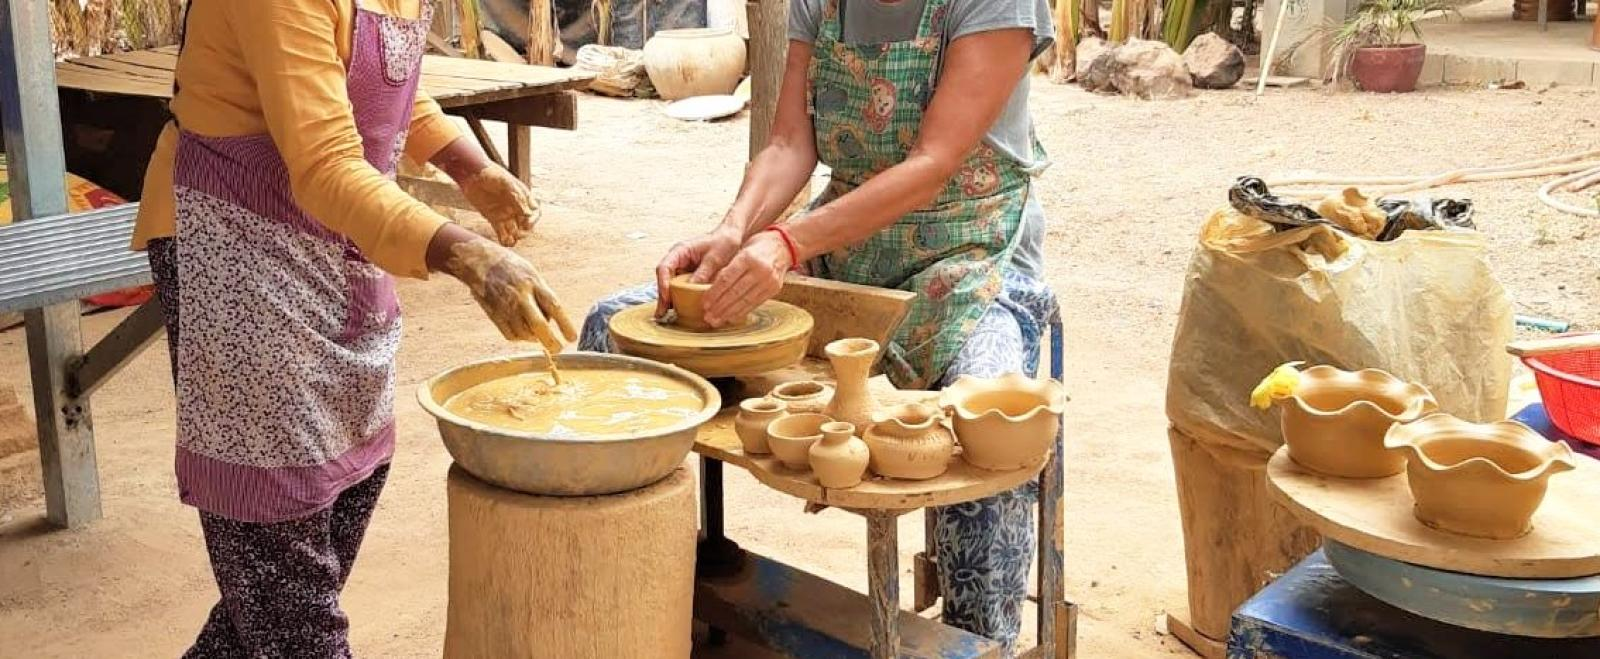 An older volunteer participates in a pottery class as part of her Khmer cultural experience in Cambodia.